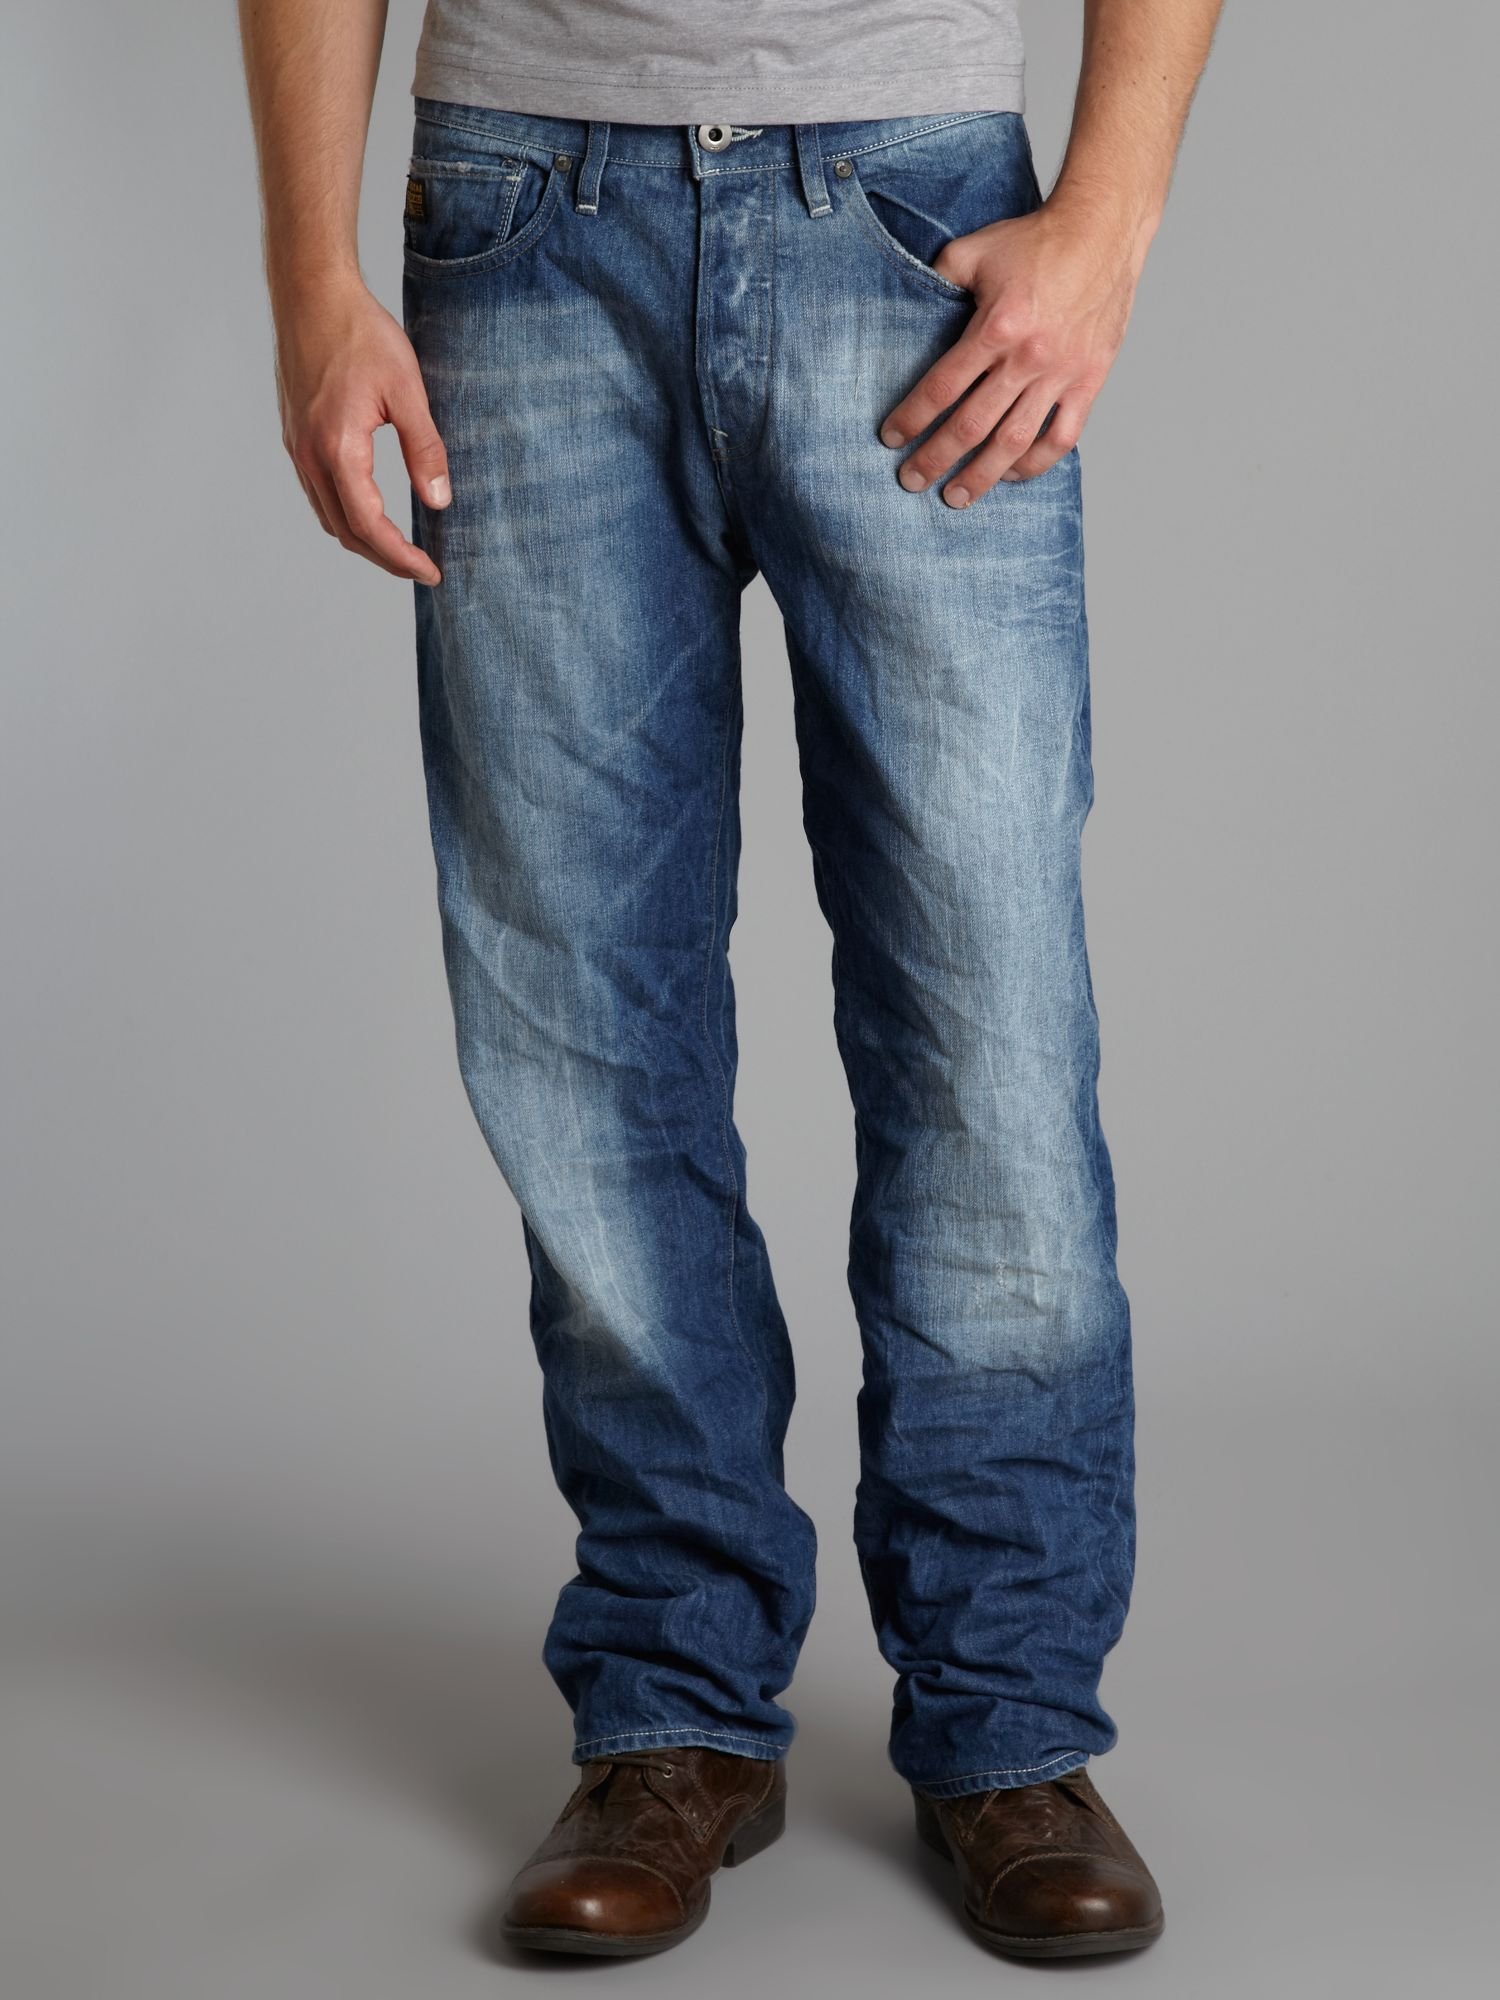 Show Me A Good Time Denim Shorts - Medium Blue Wash. $ USD. QUICK VIEW. Worthy Of Change Distressed Shorts - Medium Blue Wash. $ USD. Just Another Day Denim Shorts - Dark Denim. $ USD. $ USD. QUICK VIEW. Flip Side Denim Bermudas - Light Blue Wash. $ USD. $ USD. QUICK VIEW.